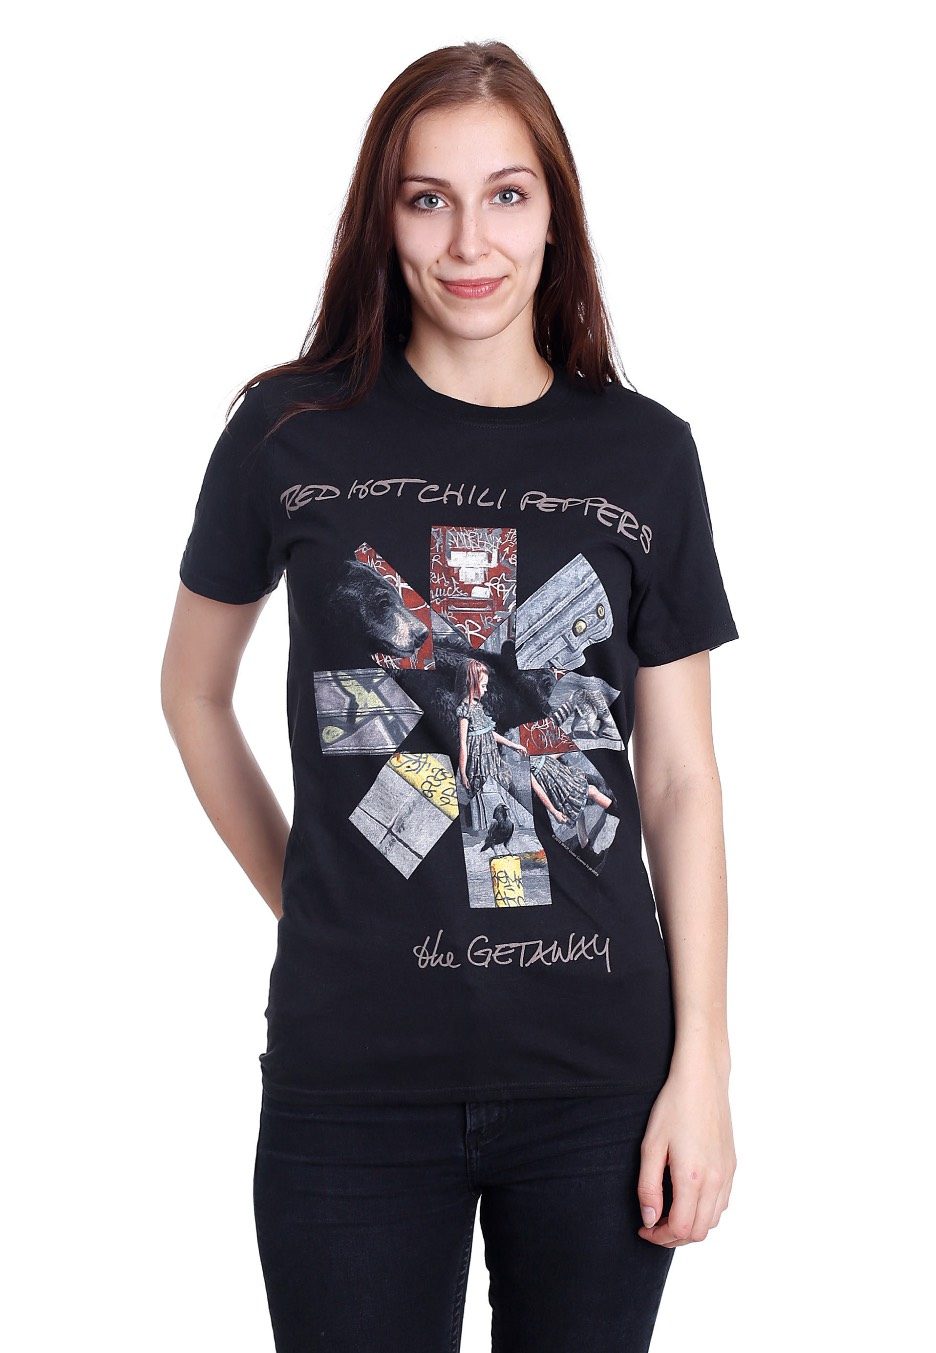 Getaway Album Asterisk T-Shirt Red Hot Chili Peppers